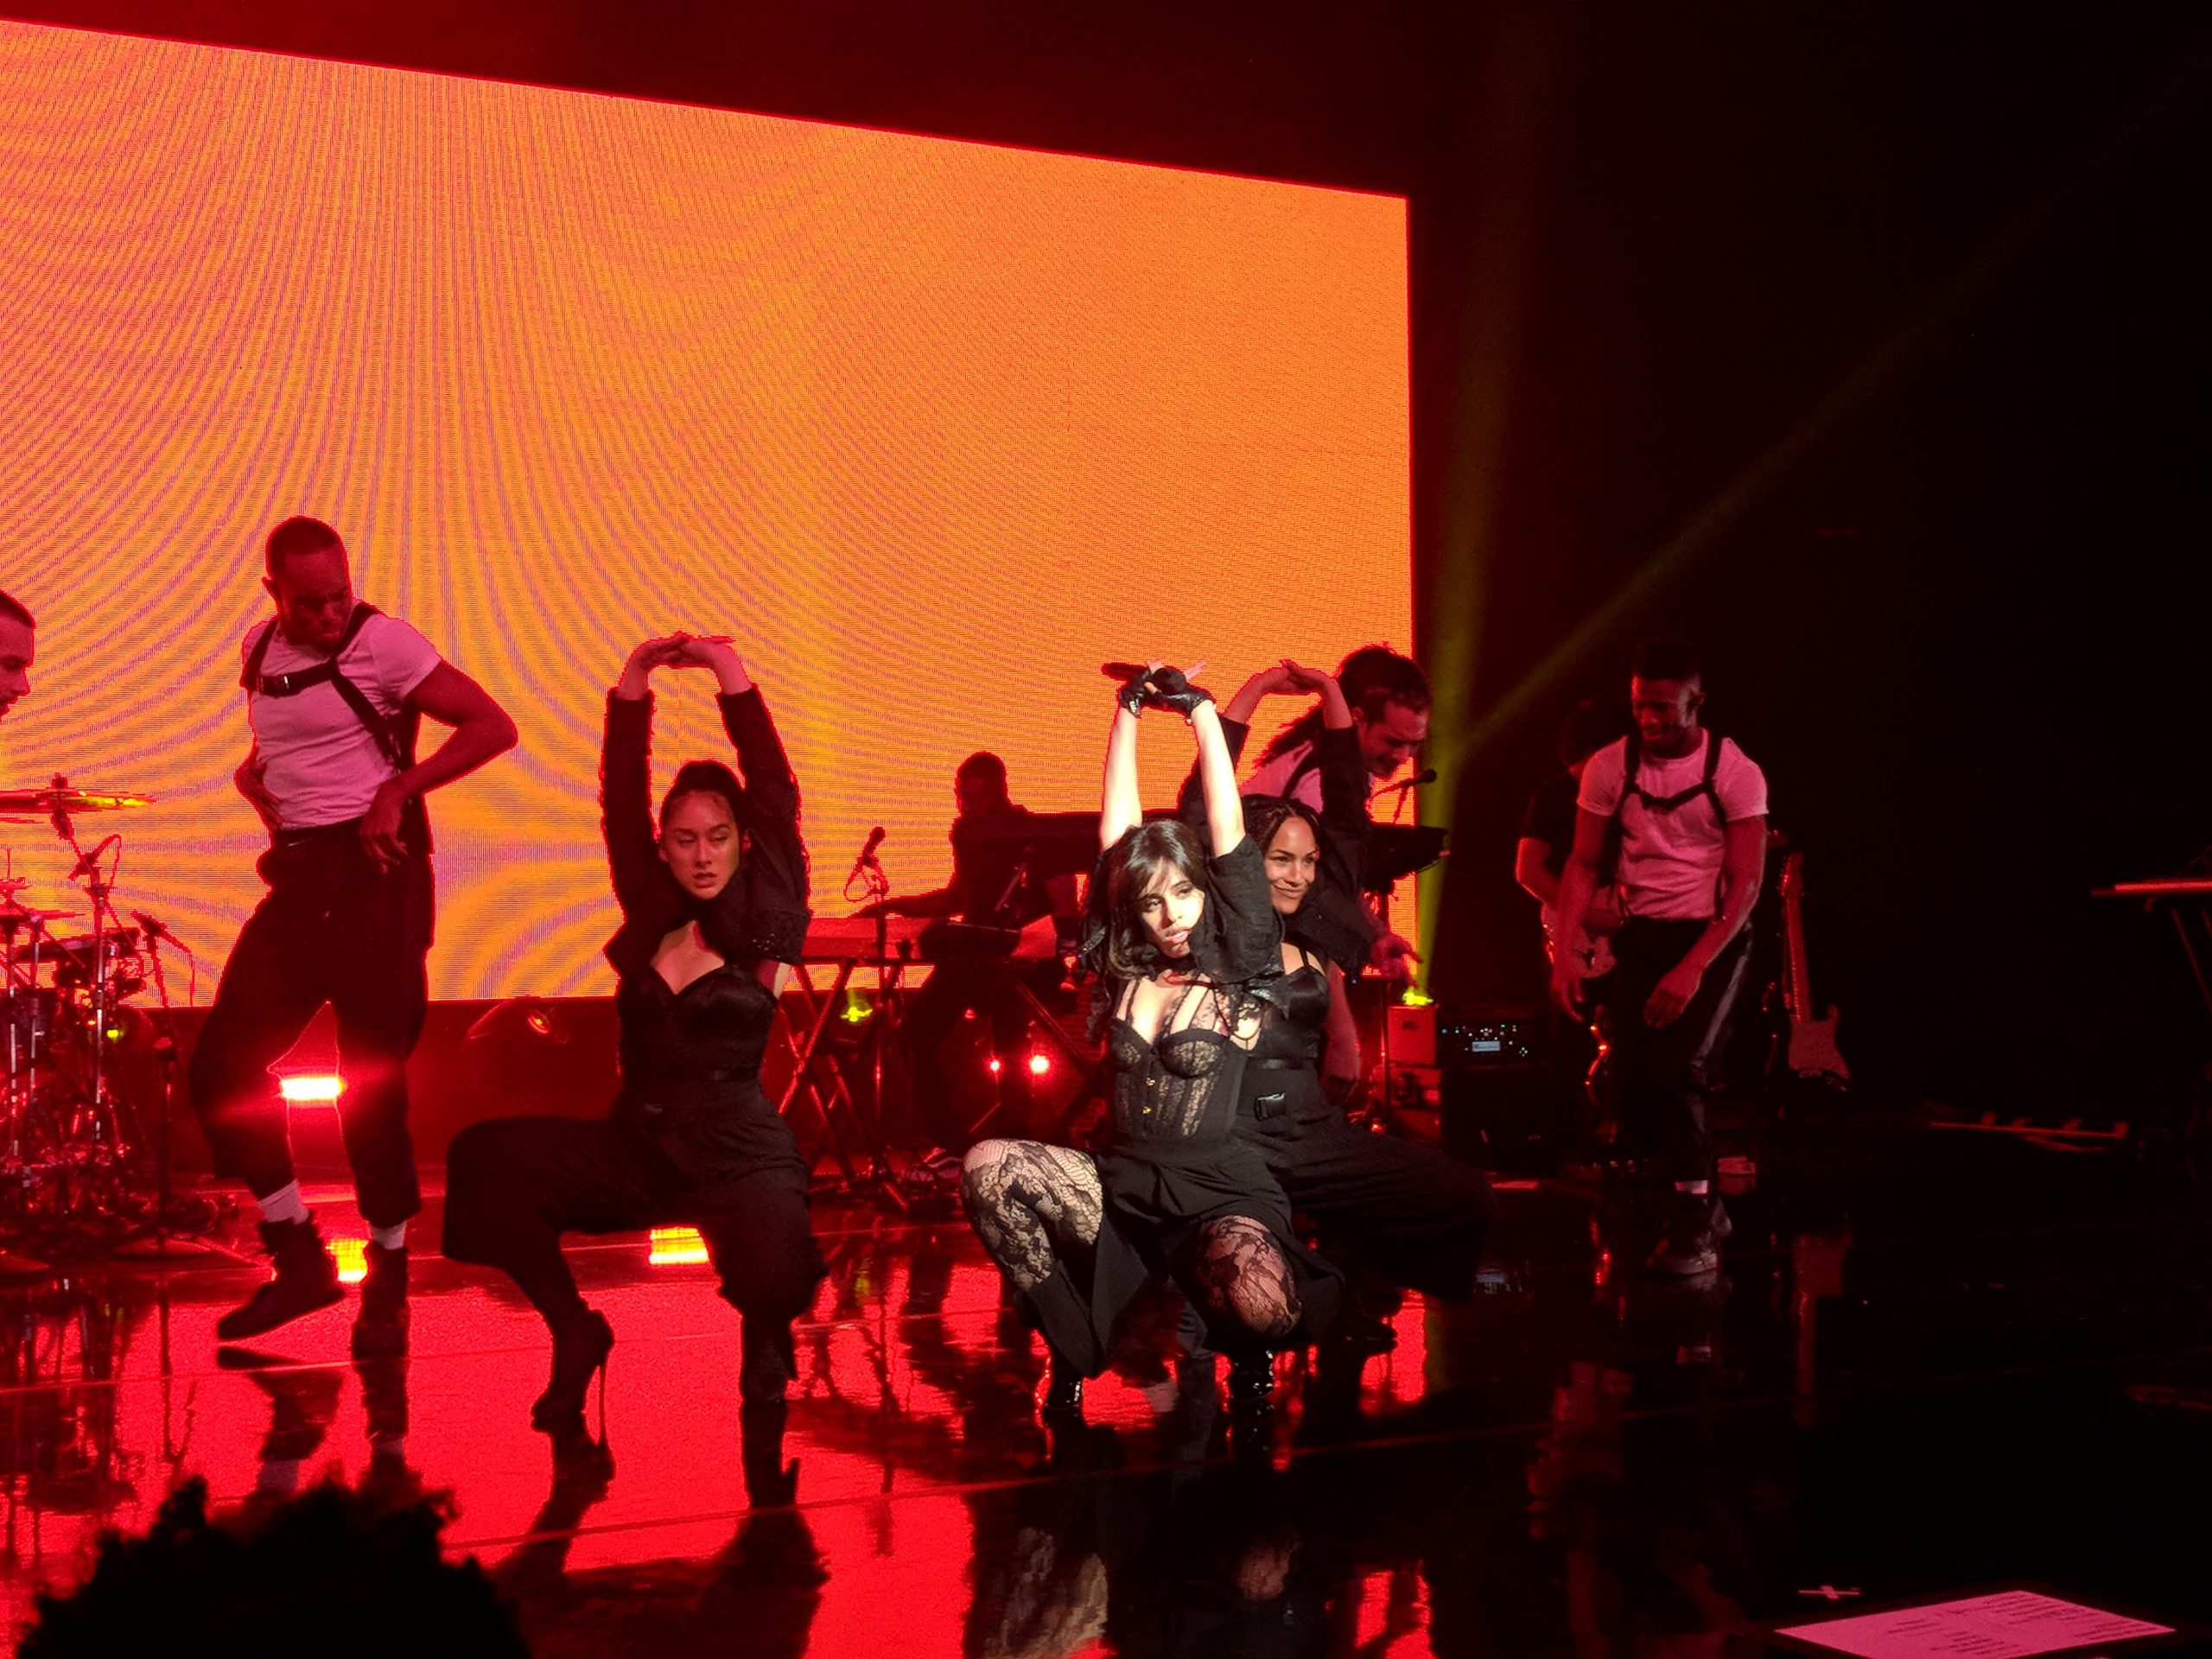 Concert Review & Photos: Camila Cabello